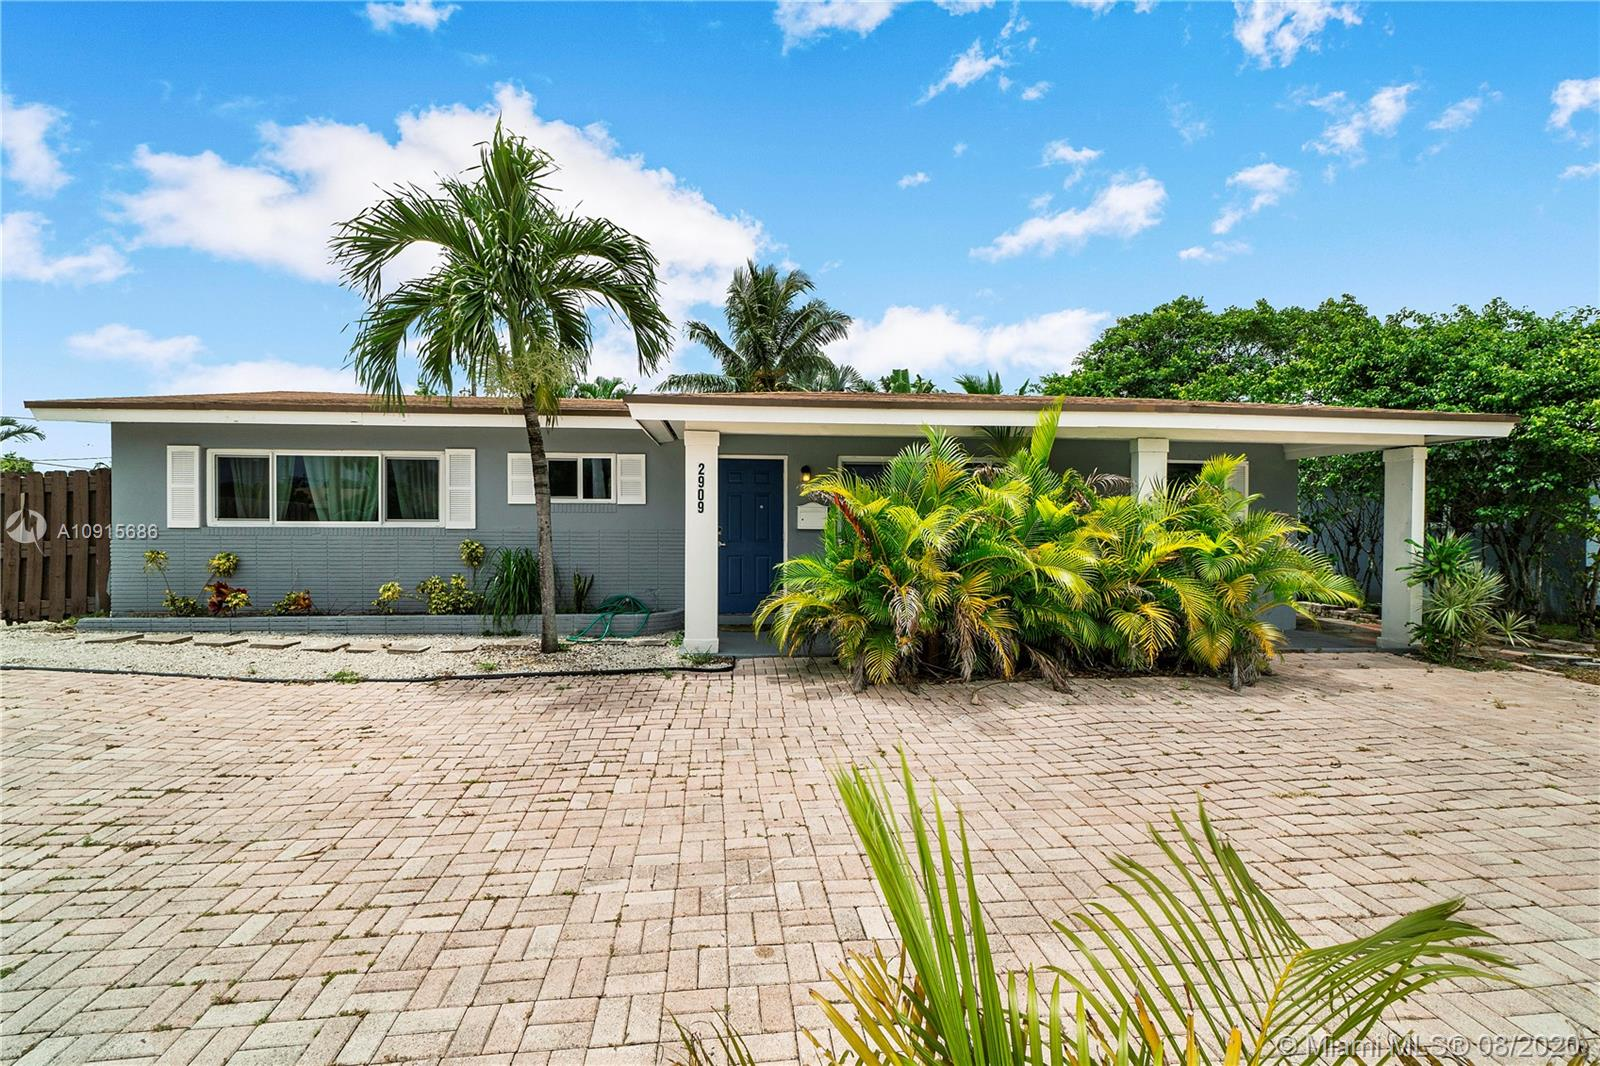 Details for 2909 9th Ave, Wilton Manors, FL 33311